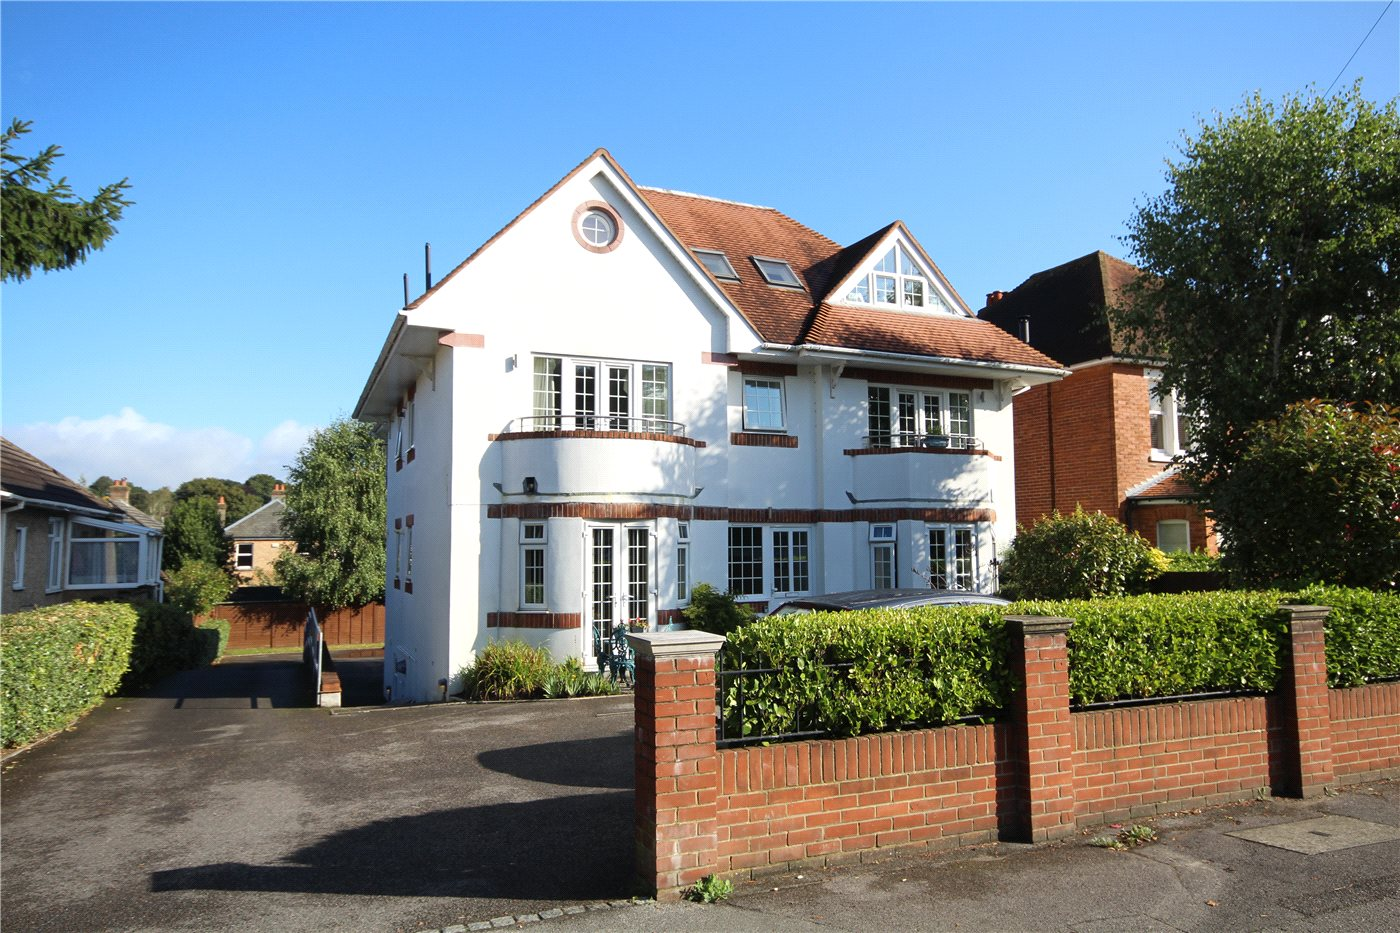 2 Bedrooms Flat for sale in Penn Hill Avenue, Lower Parkstone, Poole, Dorset, BH14